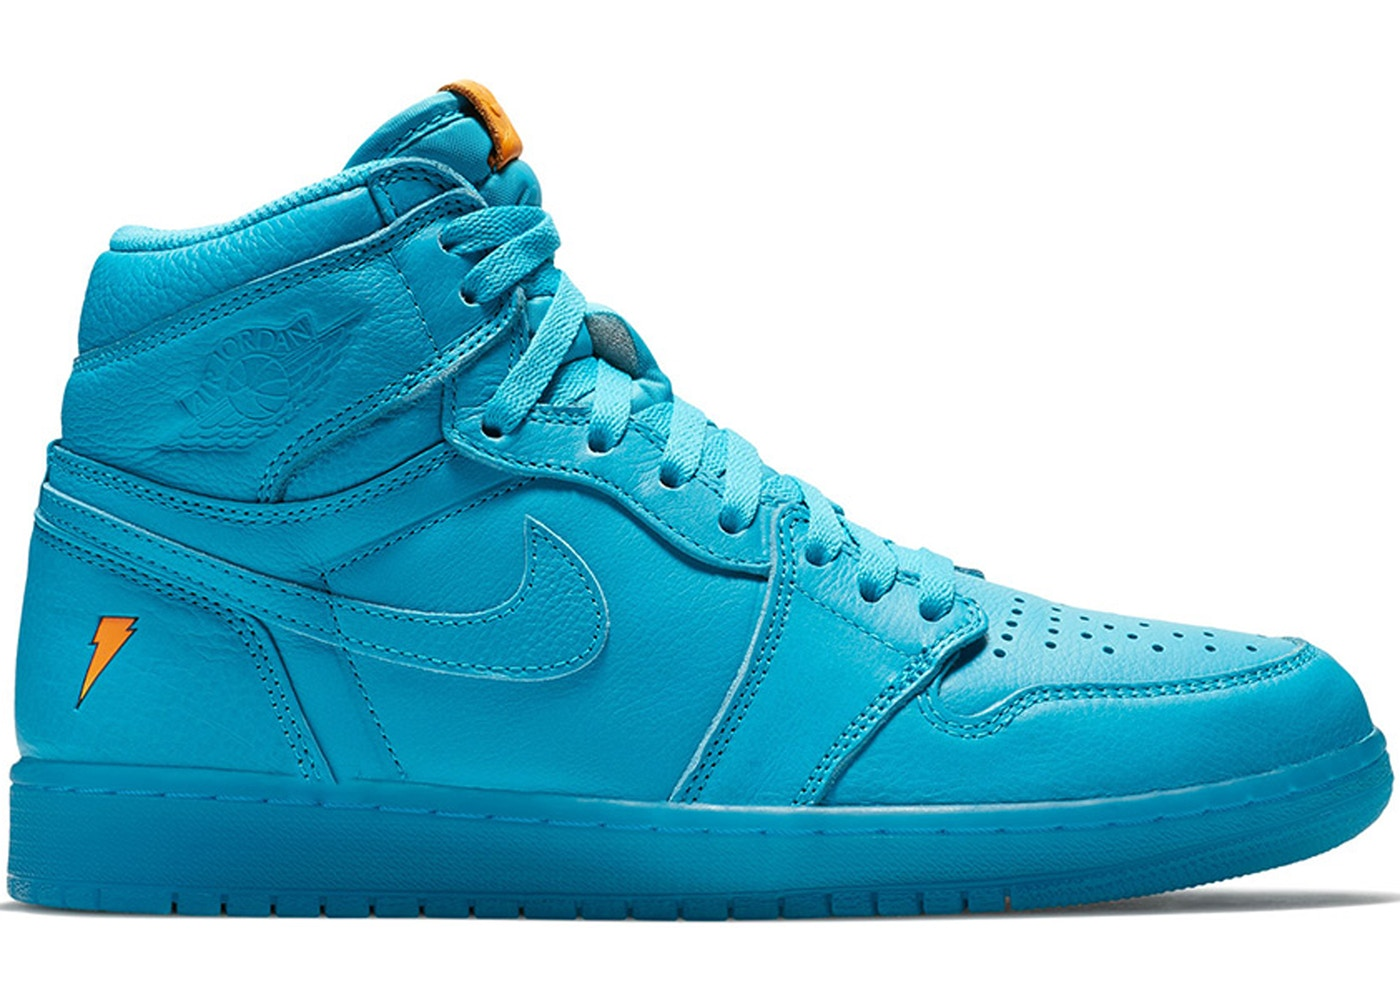 reputable site 1ace6 c6062 Jordan 1 Retro High Gatorade Blue Lagoon